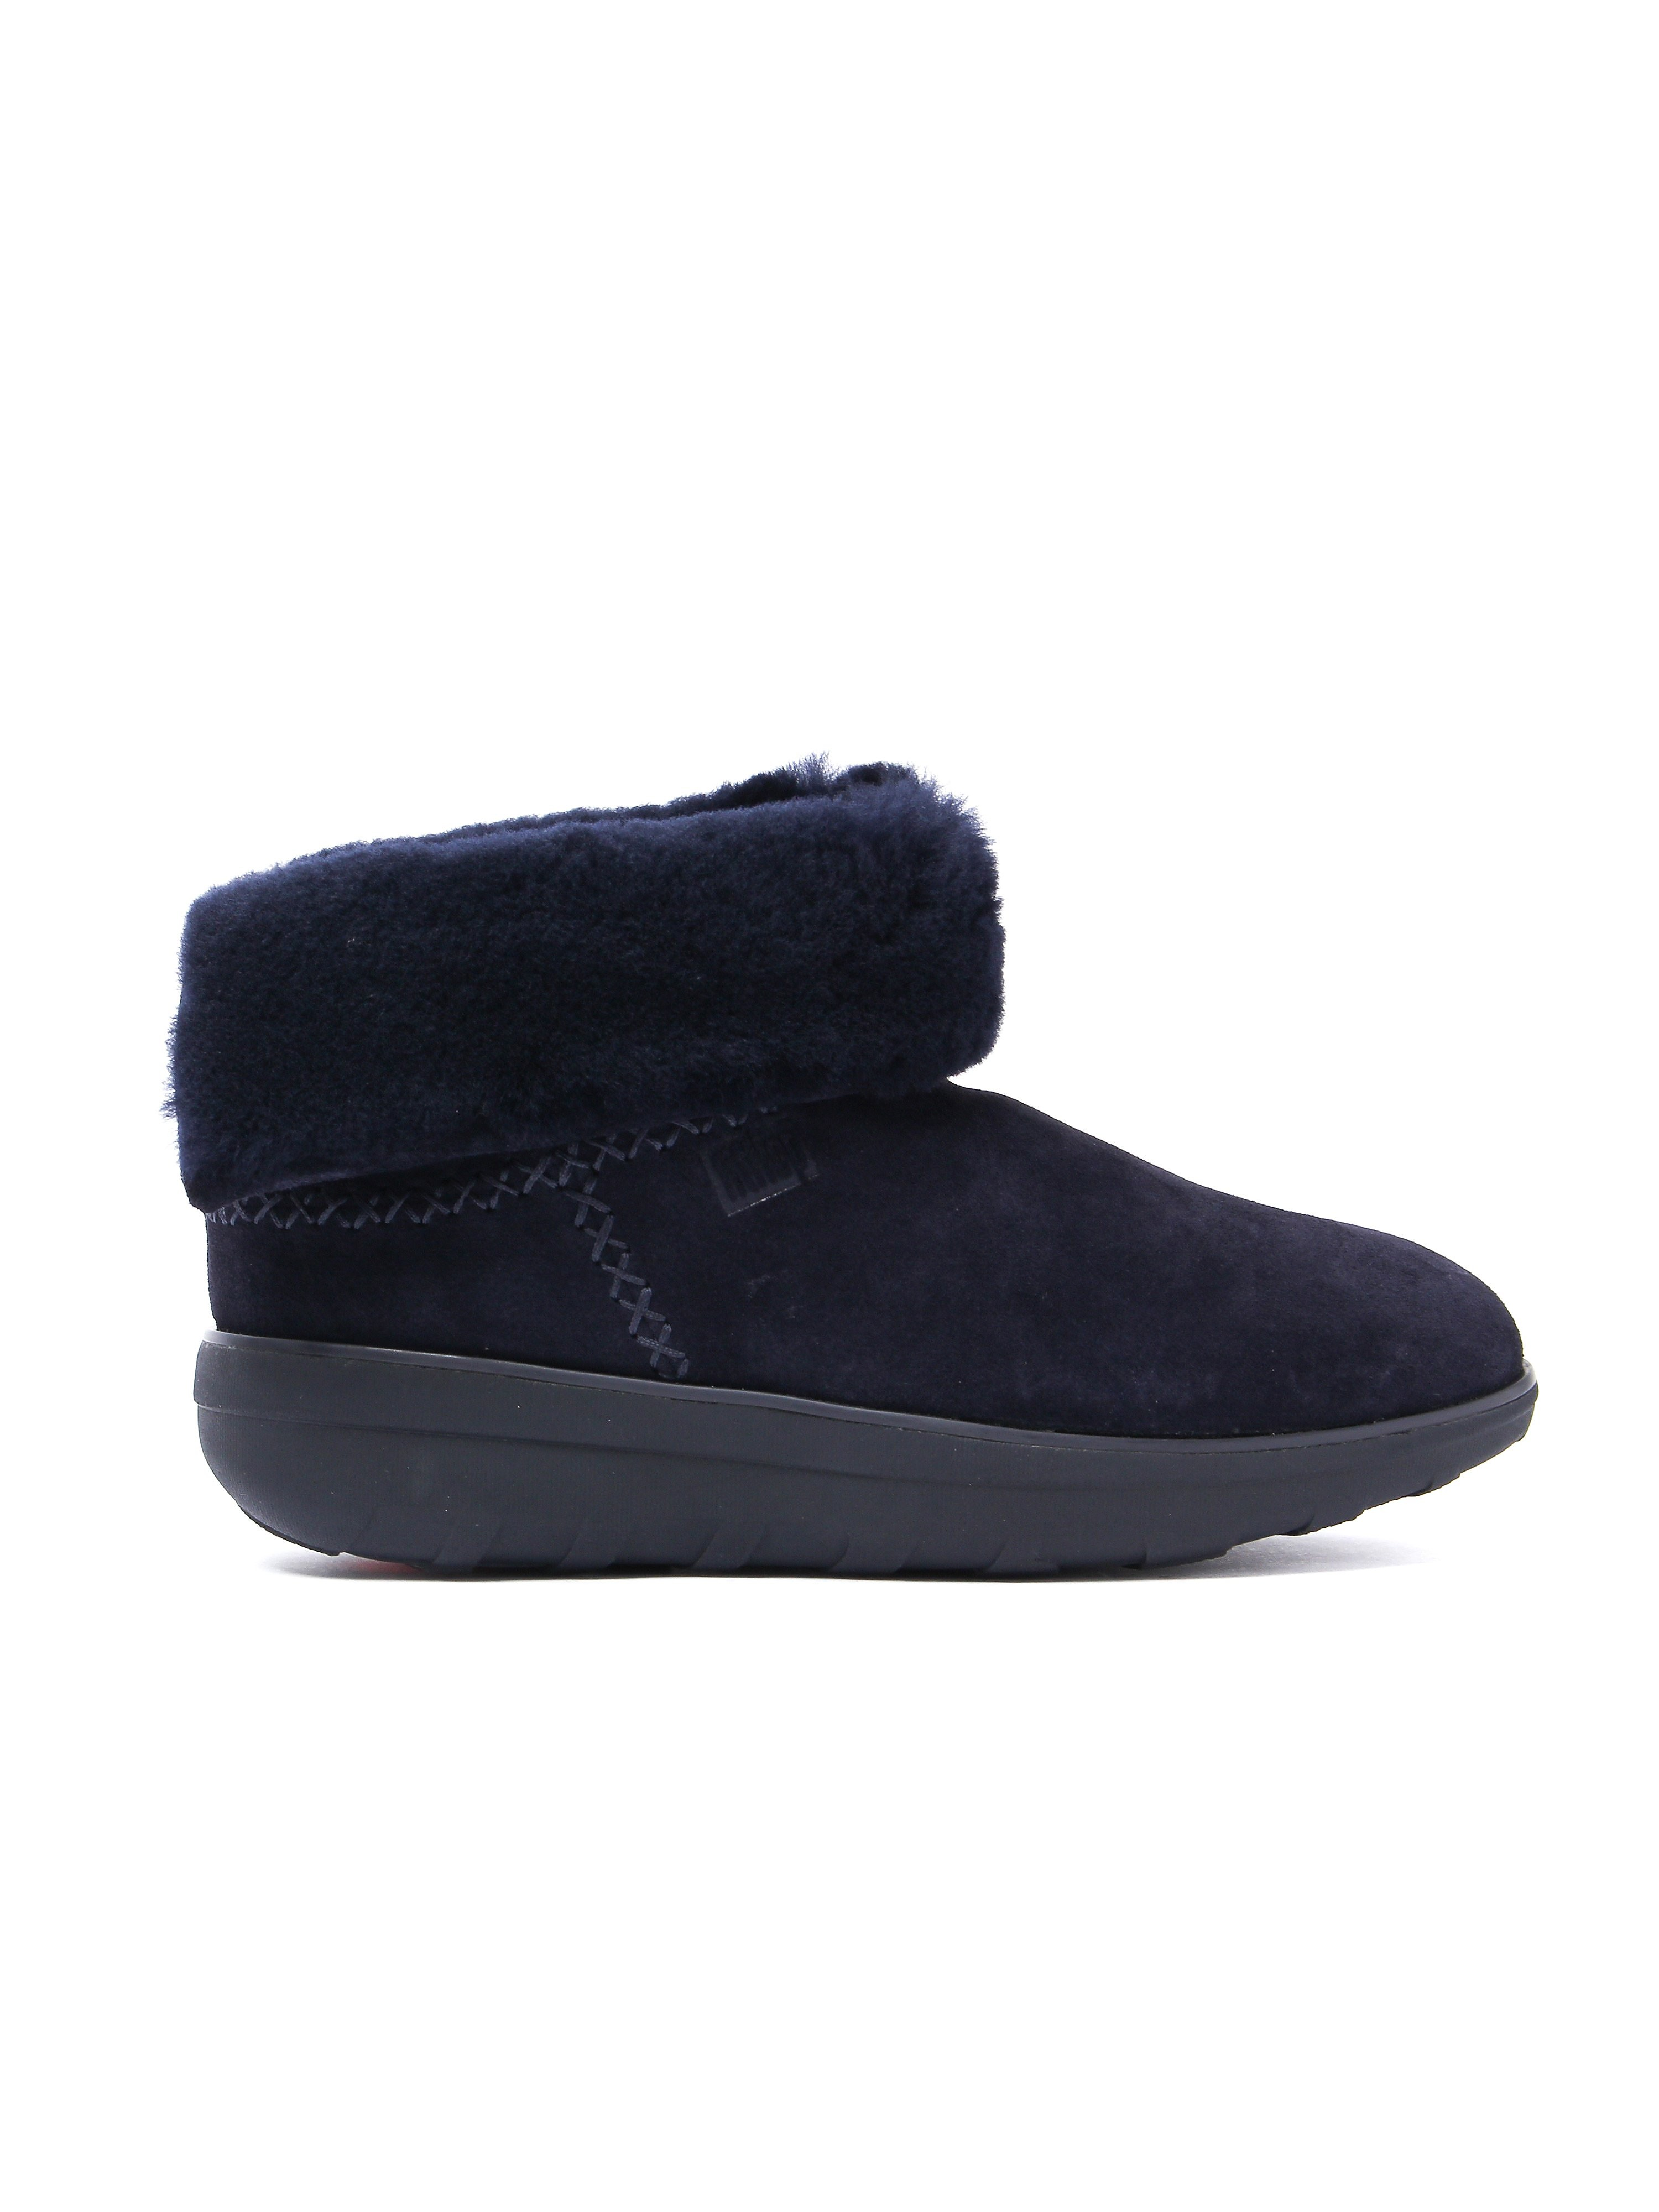 FitFlop Women's Mukluk Shorty 2 Boots - Supernavy Suede